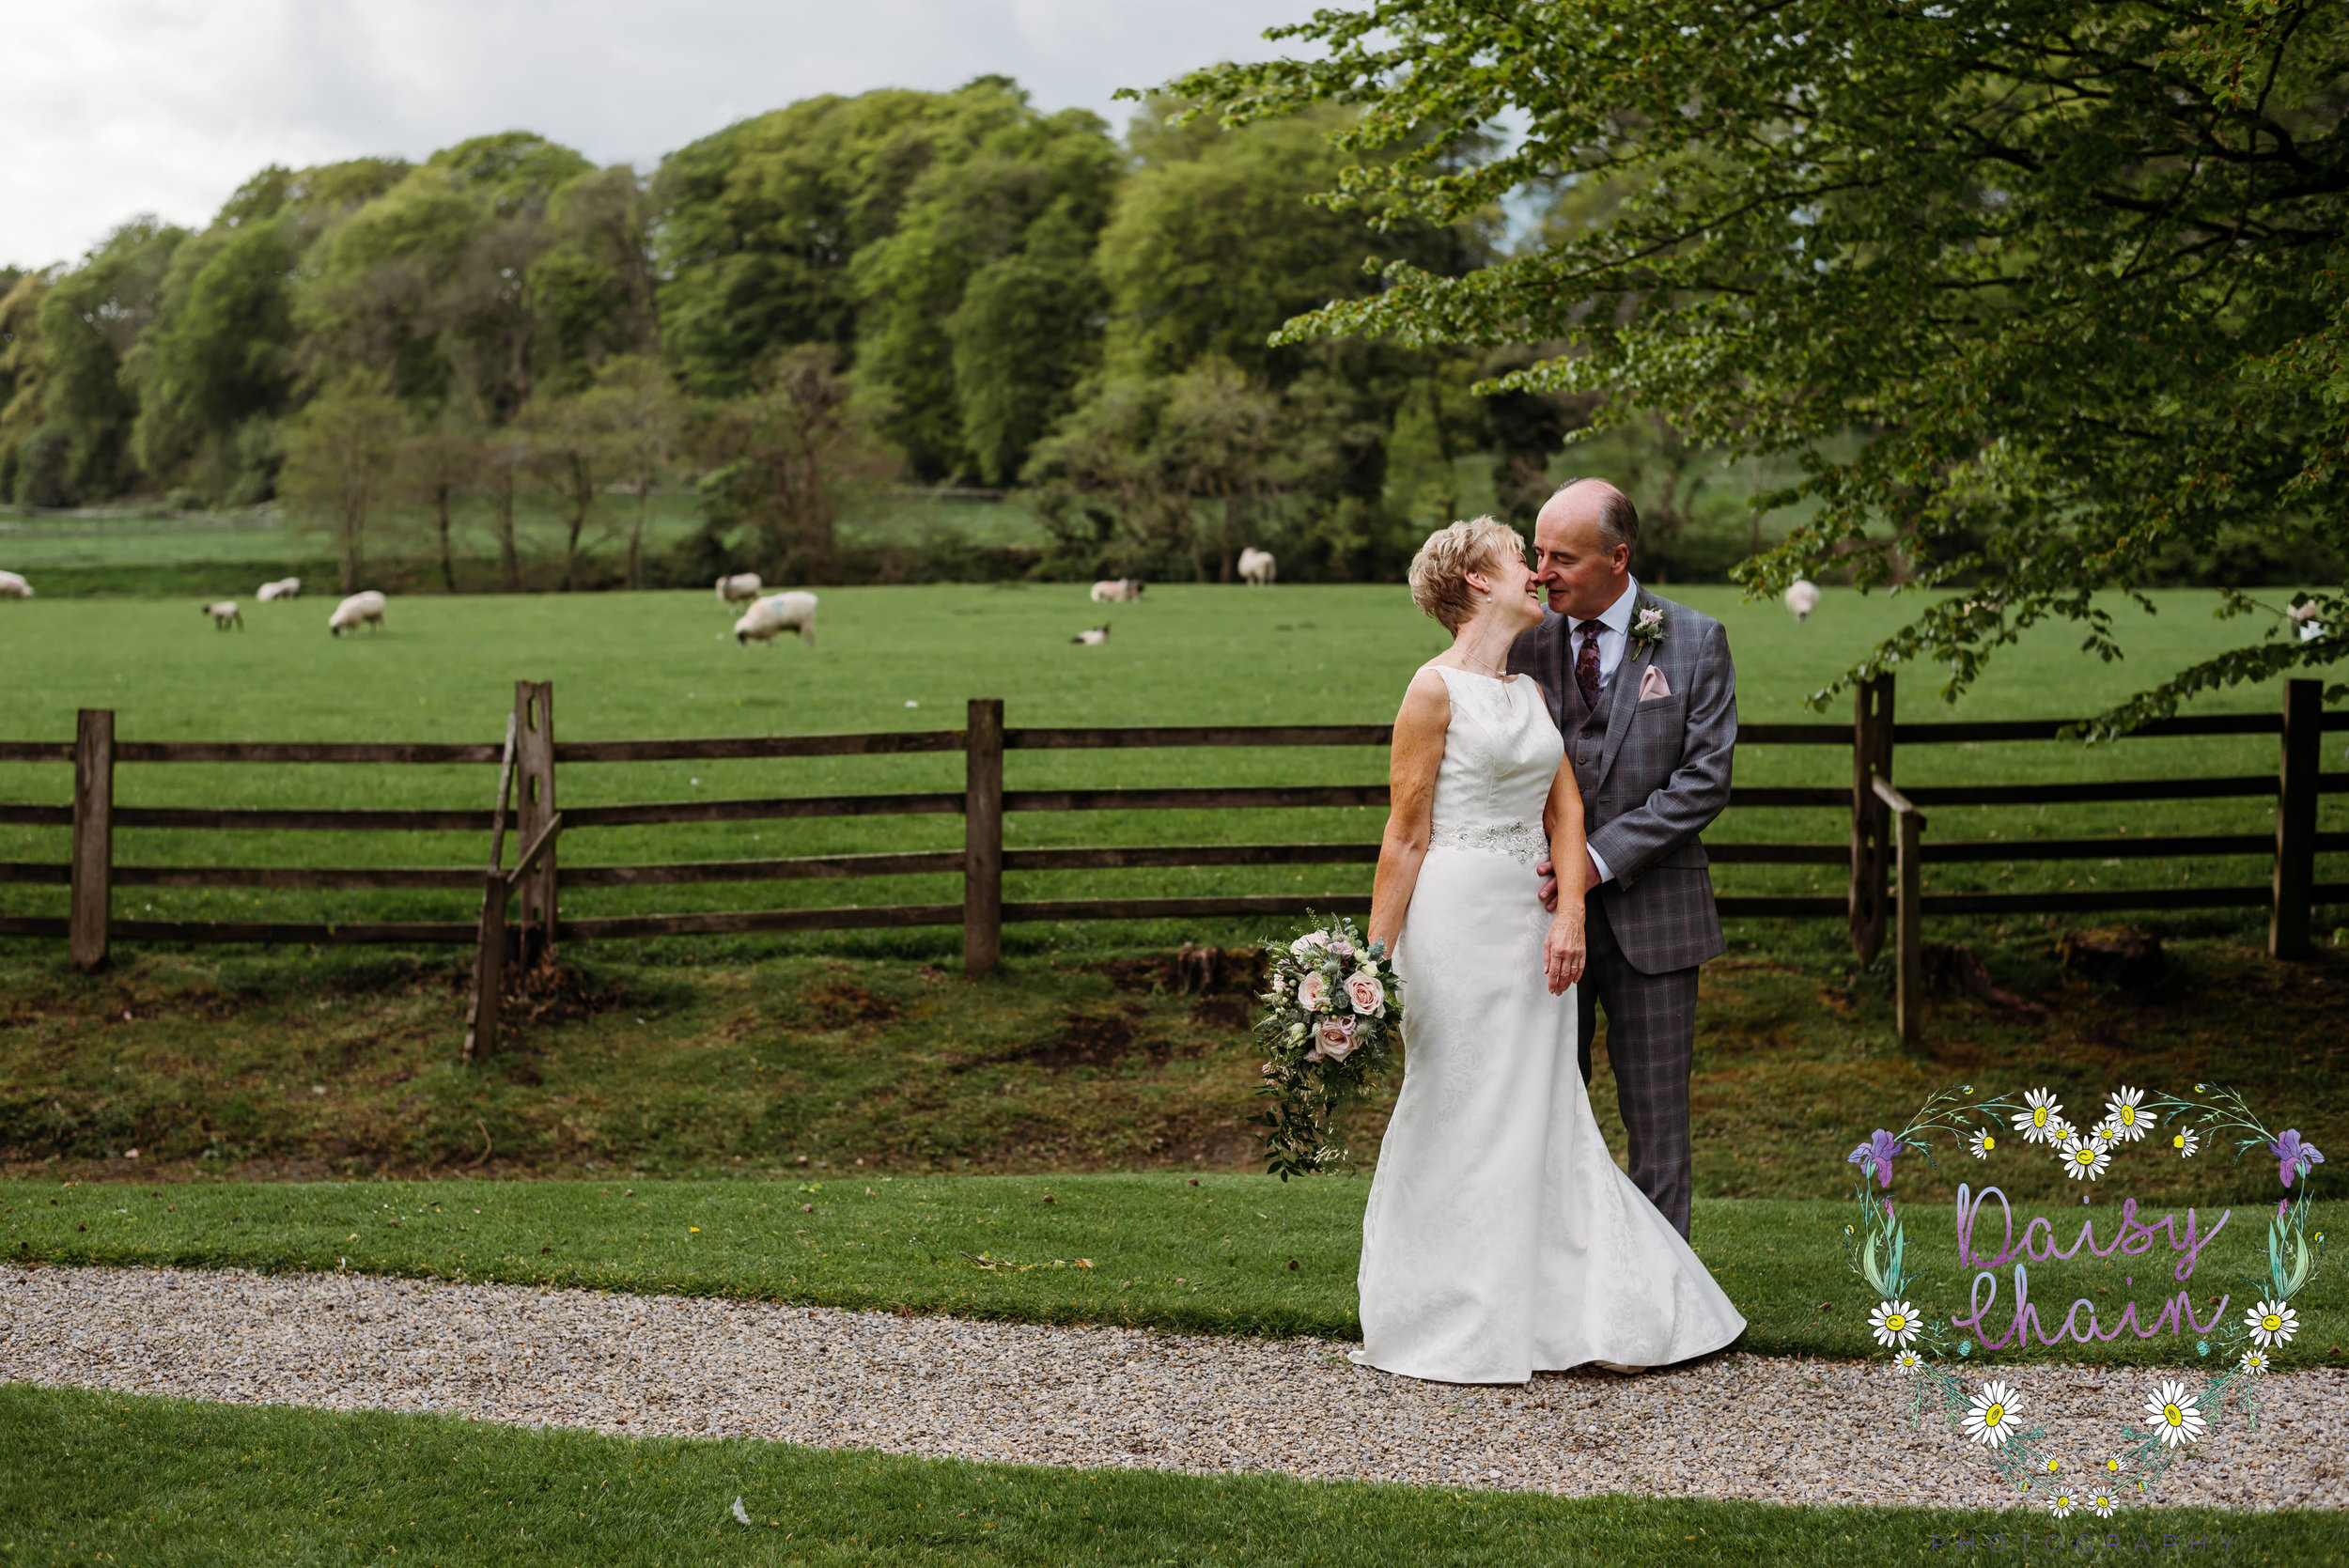 Couples portraits at mitton hall